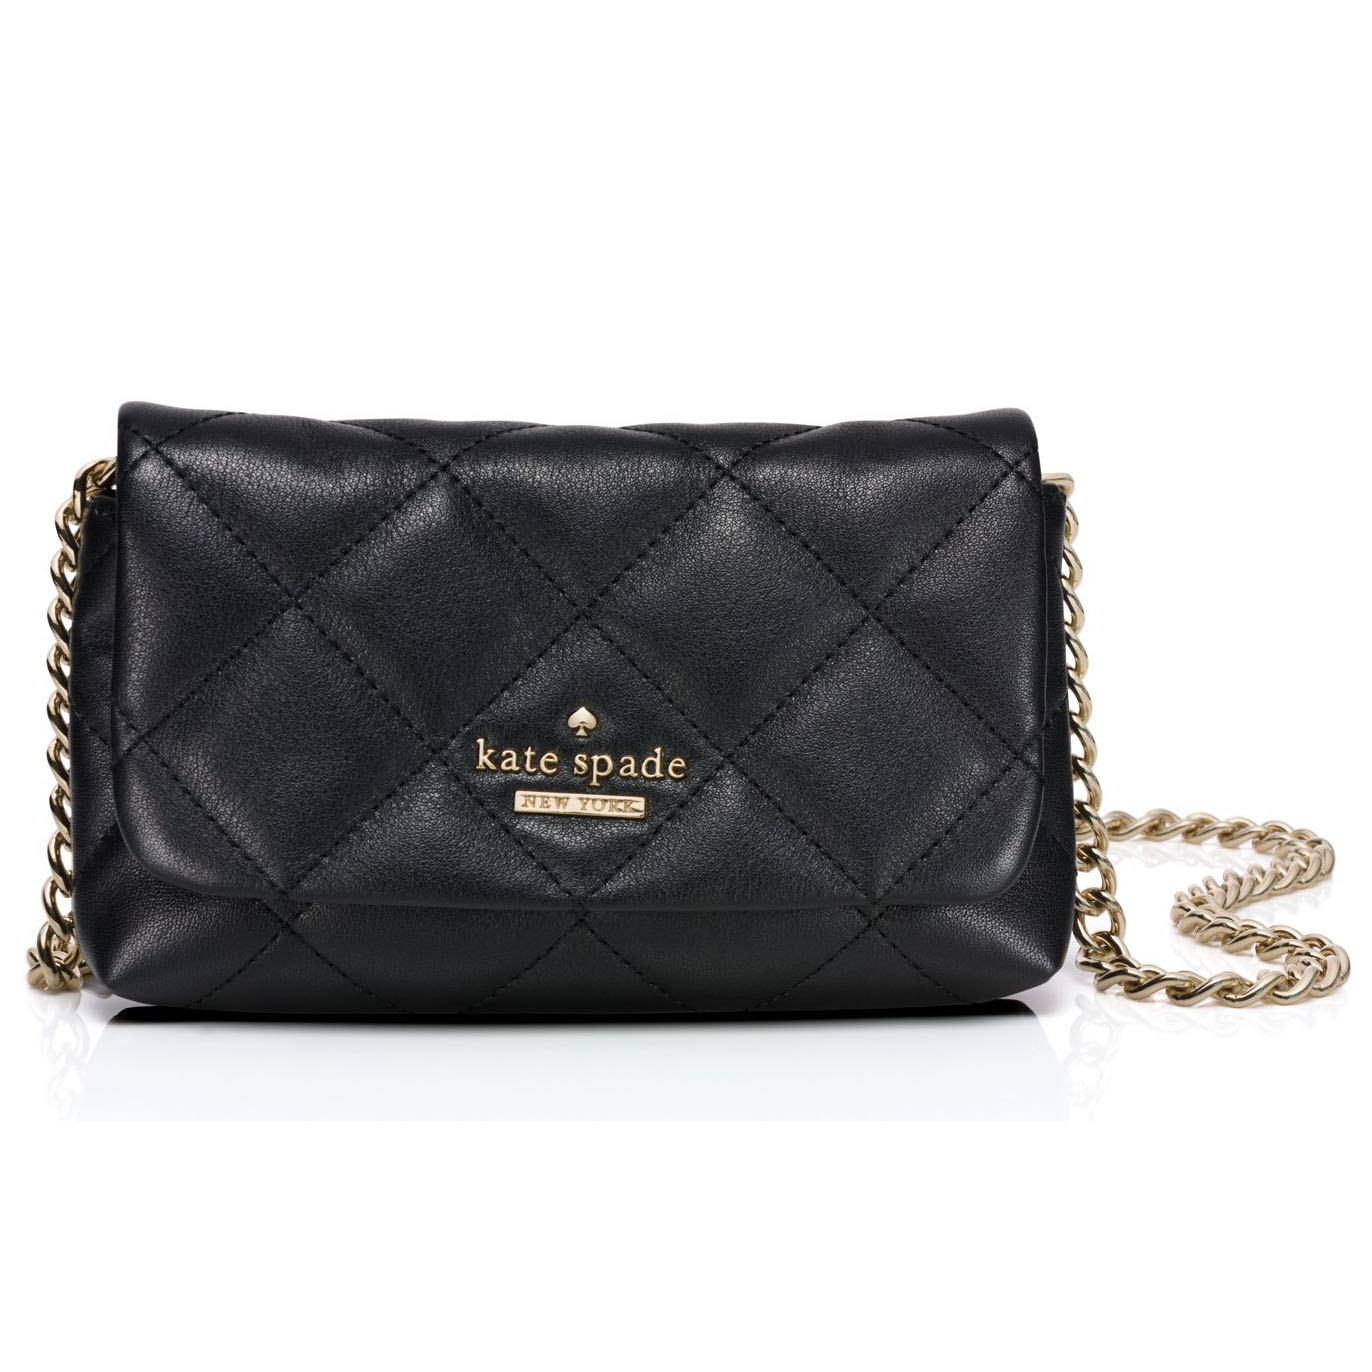 Kate Spade Emerson Place Emi Crossbody Bag Black # PWRU4641